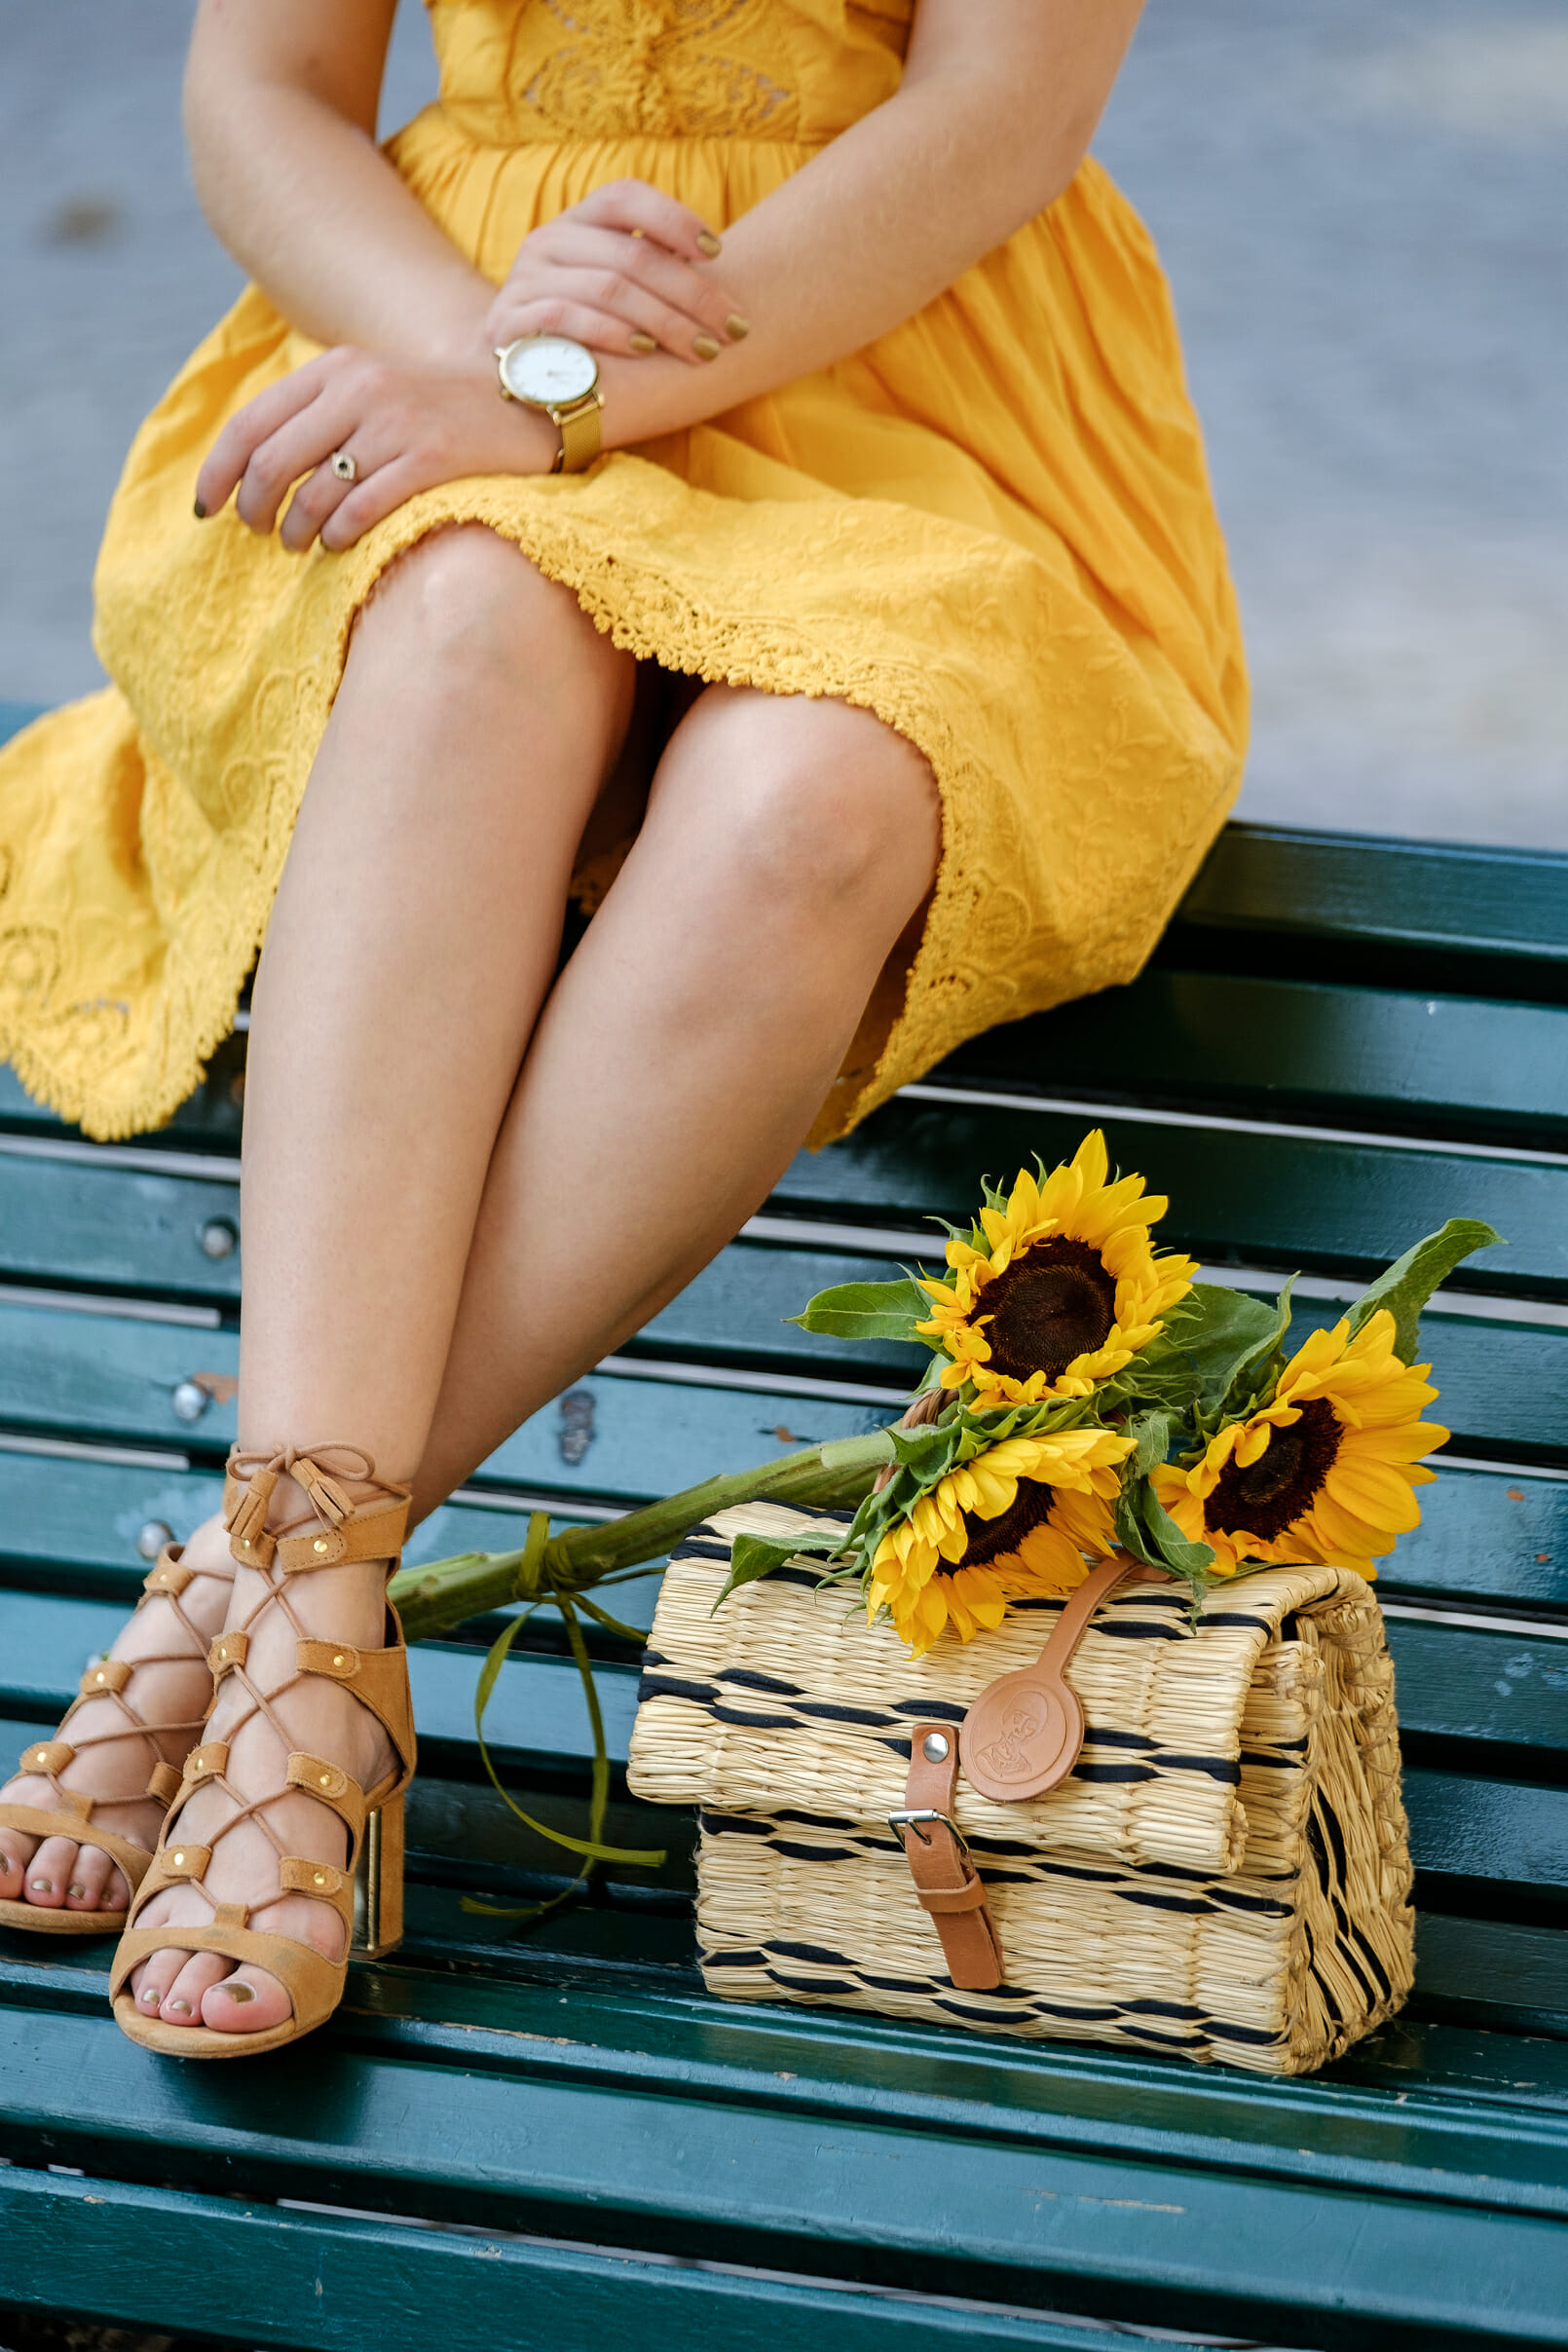 Le Fashionaire yellow embroidered dress suede light brown sandals straw rattan hand made portuguese brand toino abel yellow sunflowers 5356 EN yellow embroidered dress suede light brown sandals straw rattan hand made portuguese brand toino abel yellow sunflowers 5356 EN